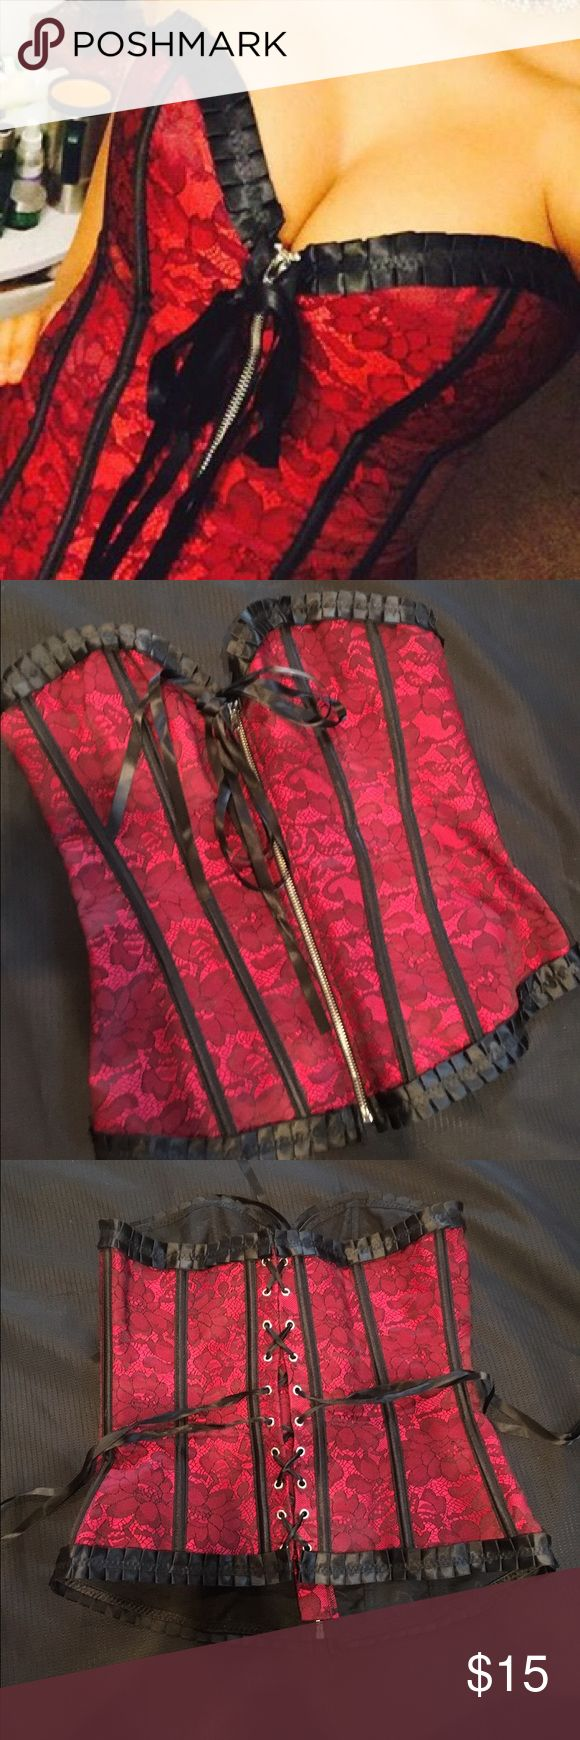 Lingerie Bustier Corset / Waist Trainer Lingerie Bustier. Worn once for Halloween! Can be used as a waist trainer. Intimates & Sleepwear